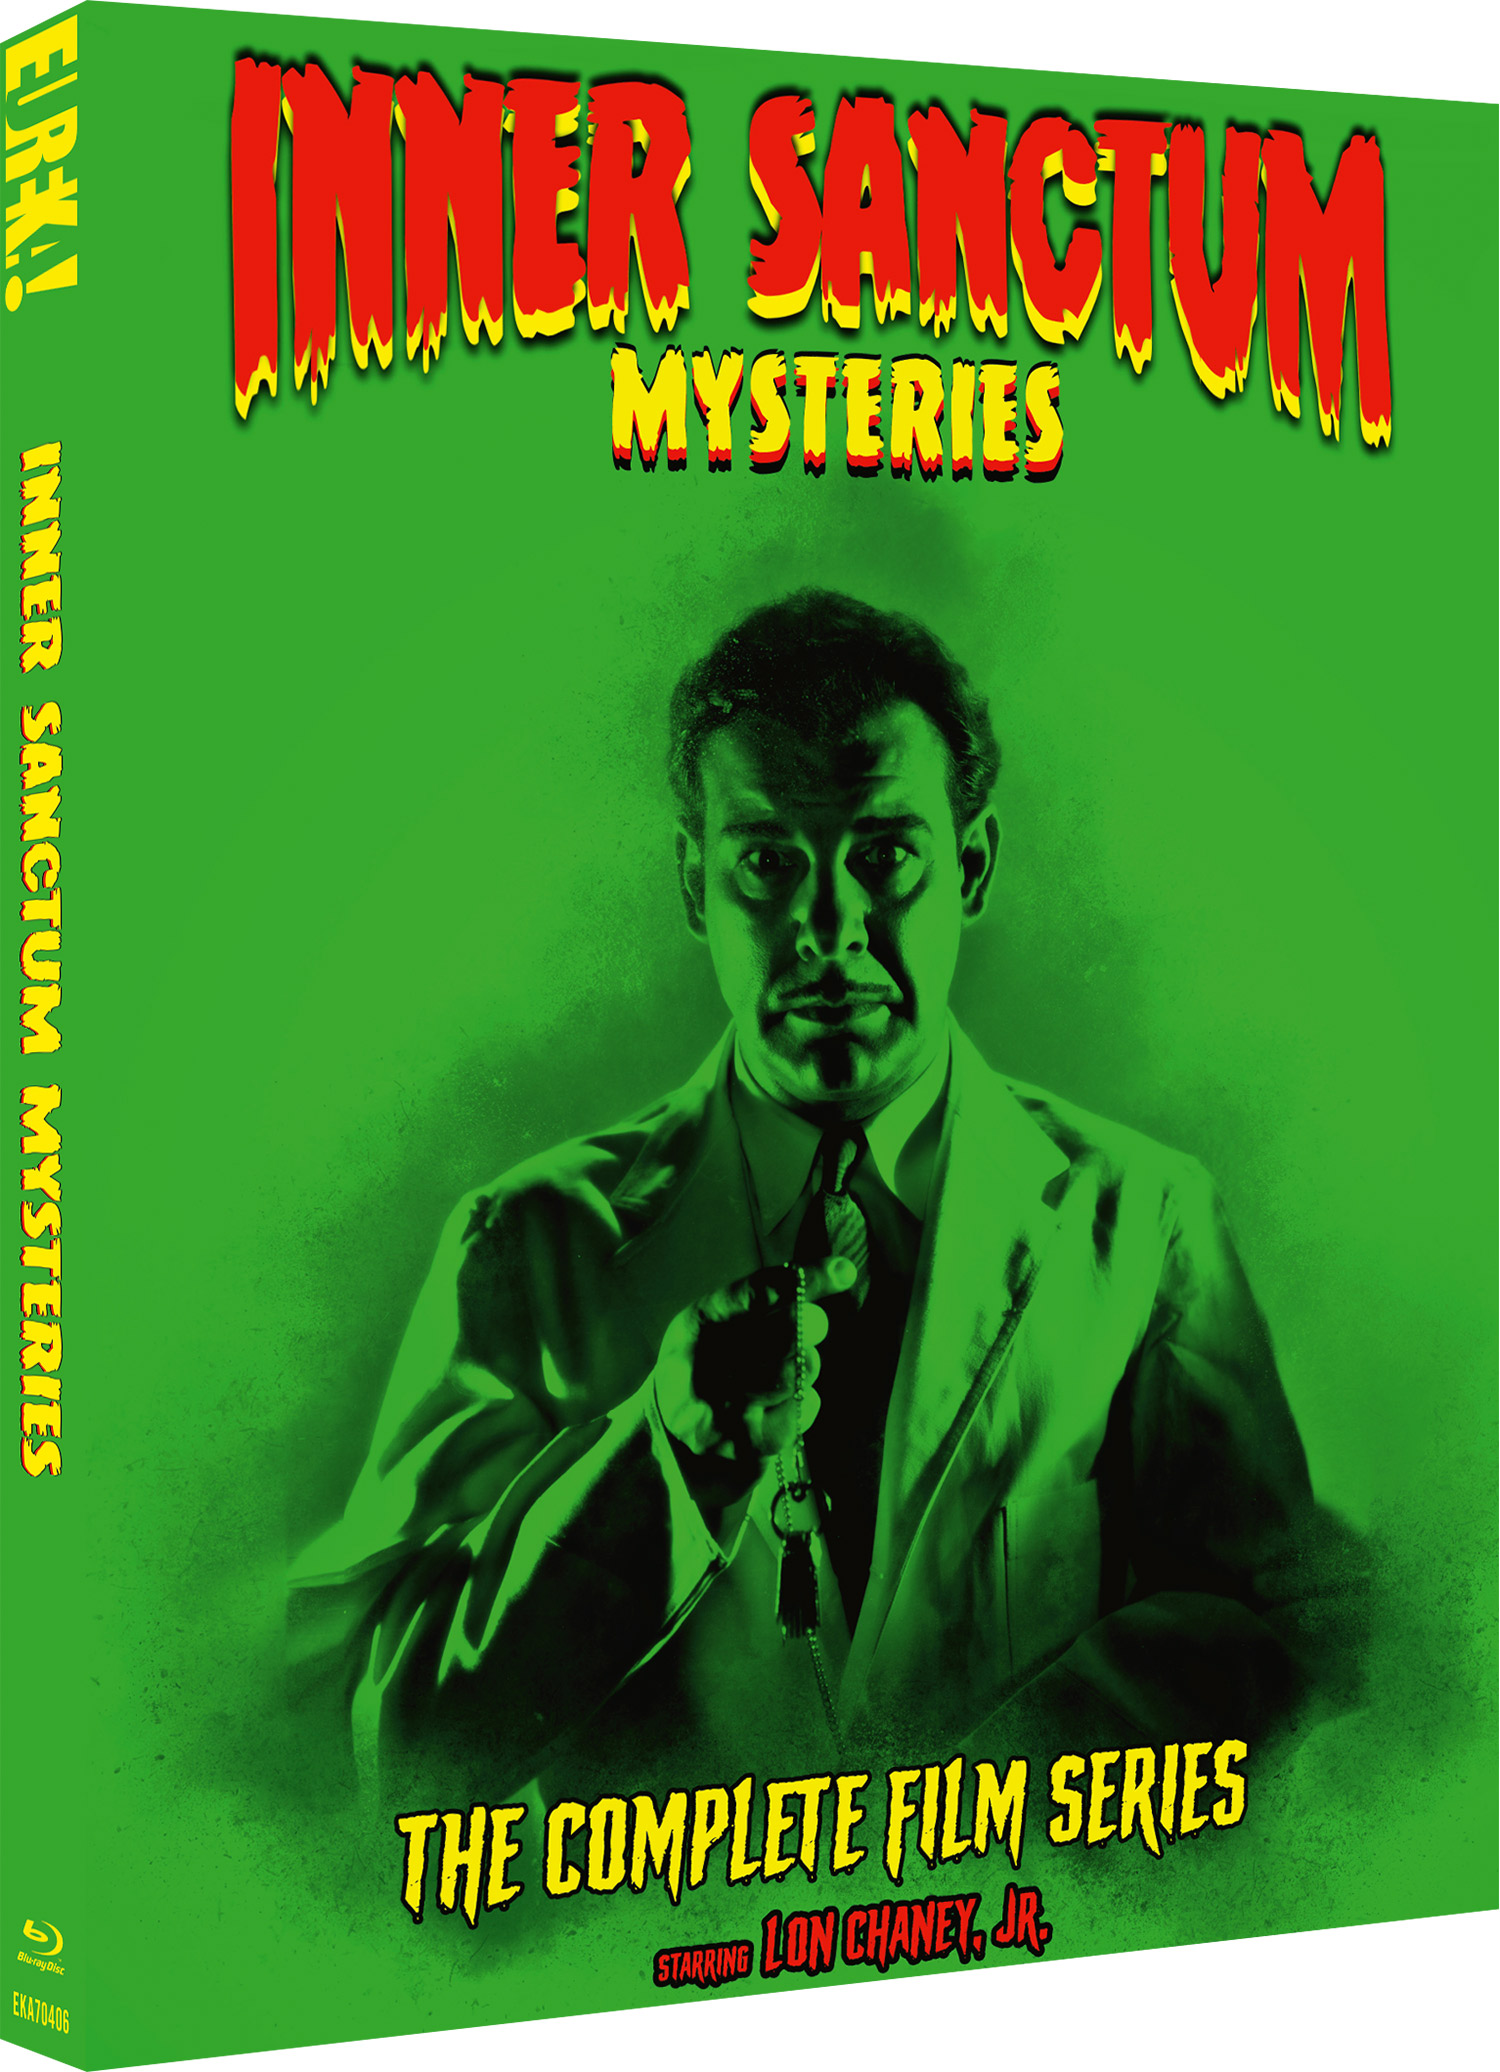 Inner Sanctum Mysteries - A must-own for every classic mystery and horror fan!